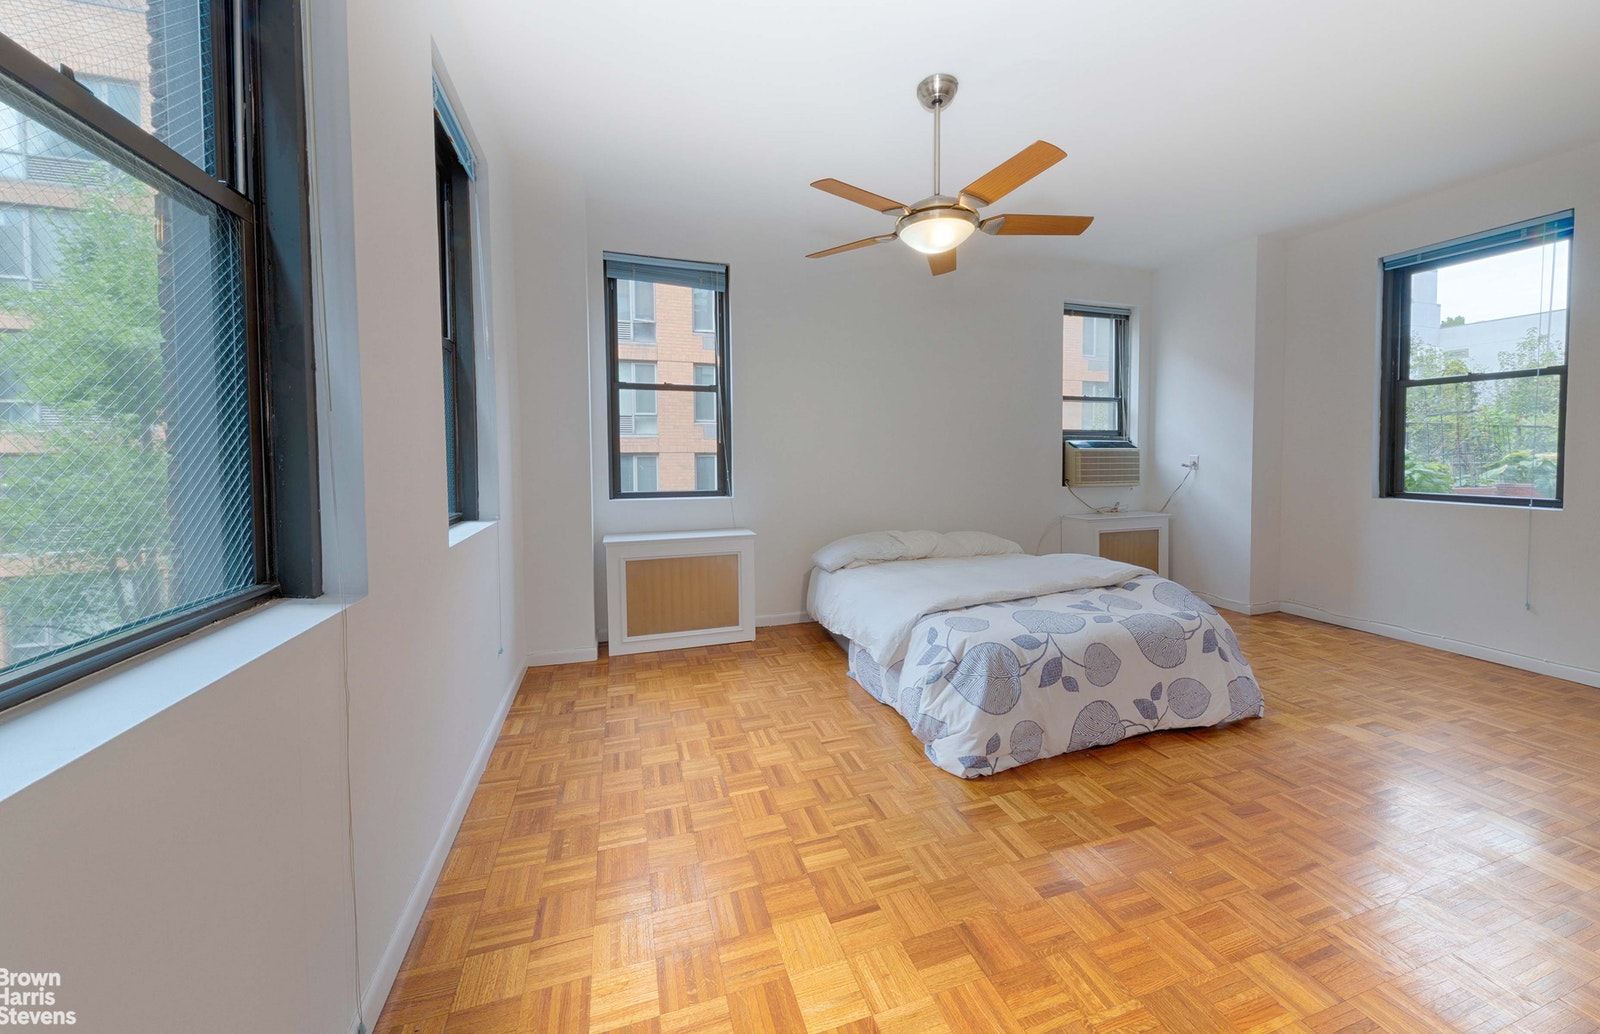 340 West 55th Street 3e, Midtown West, NYC, 10019, $749,000, Property For Sale, Halstead Real Estate, Photo 10